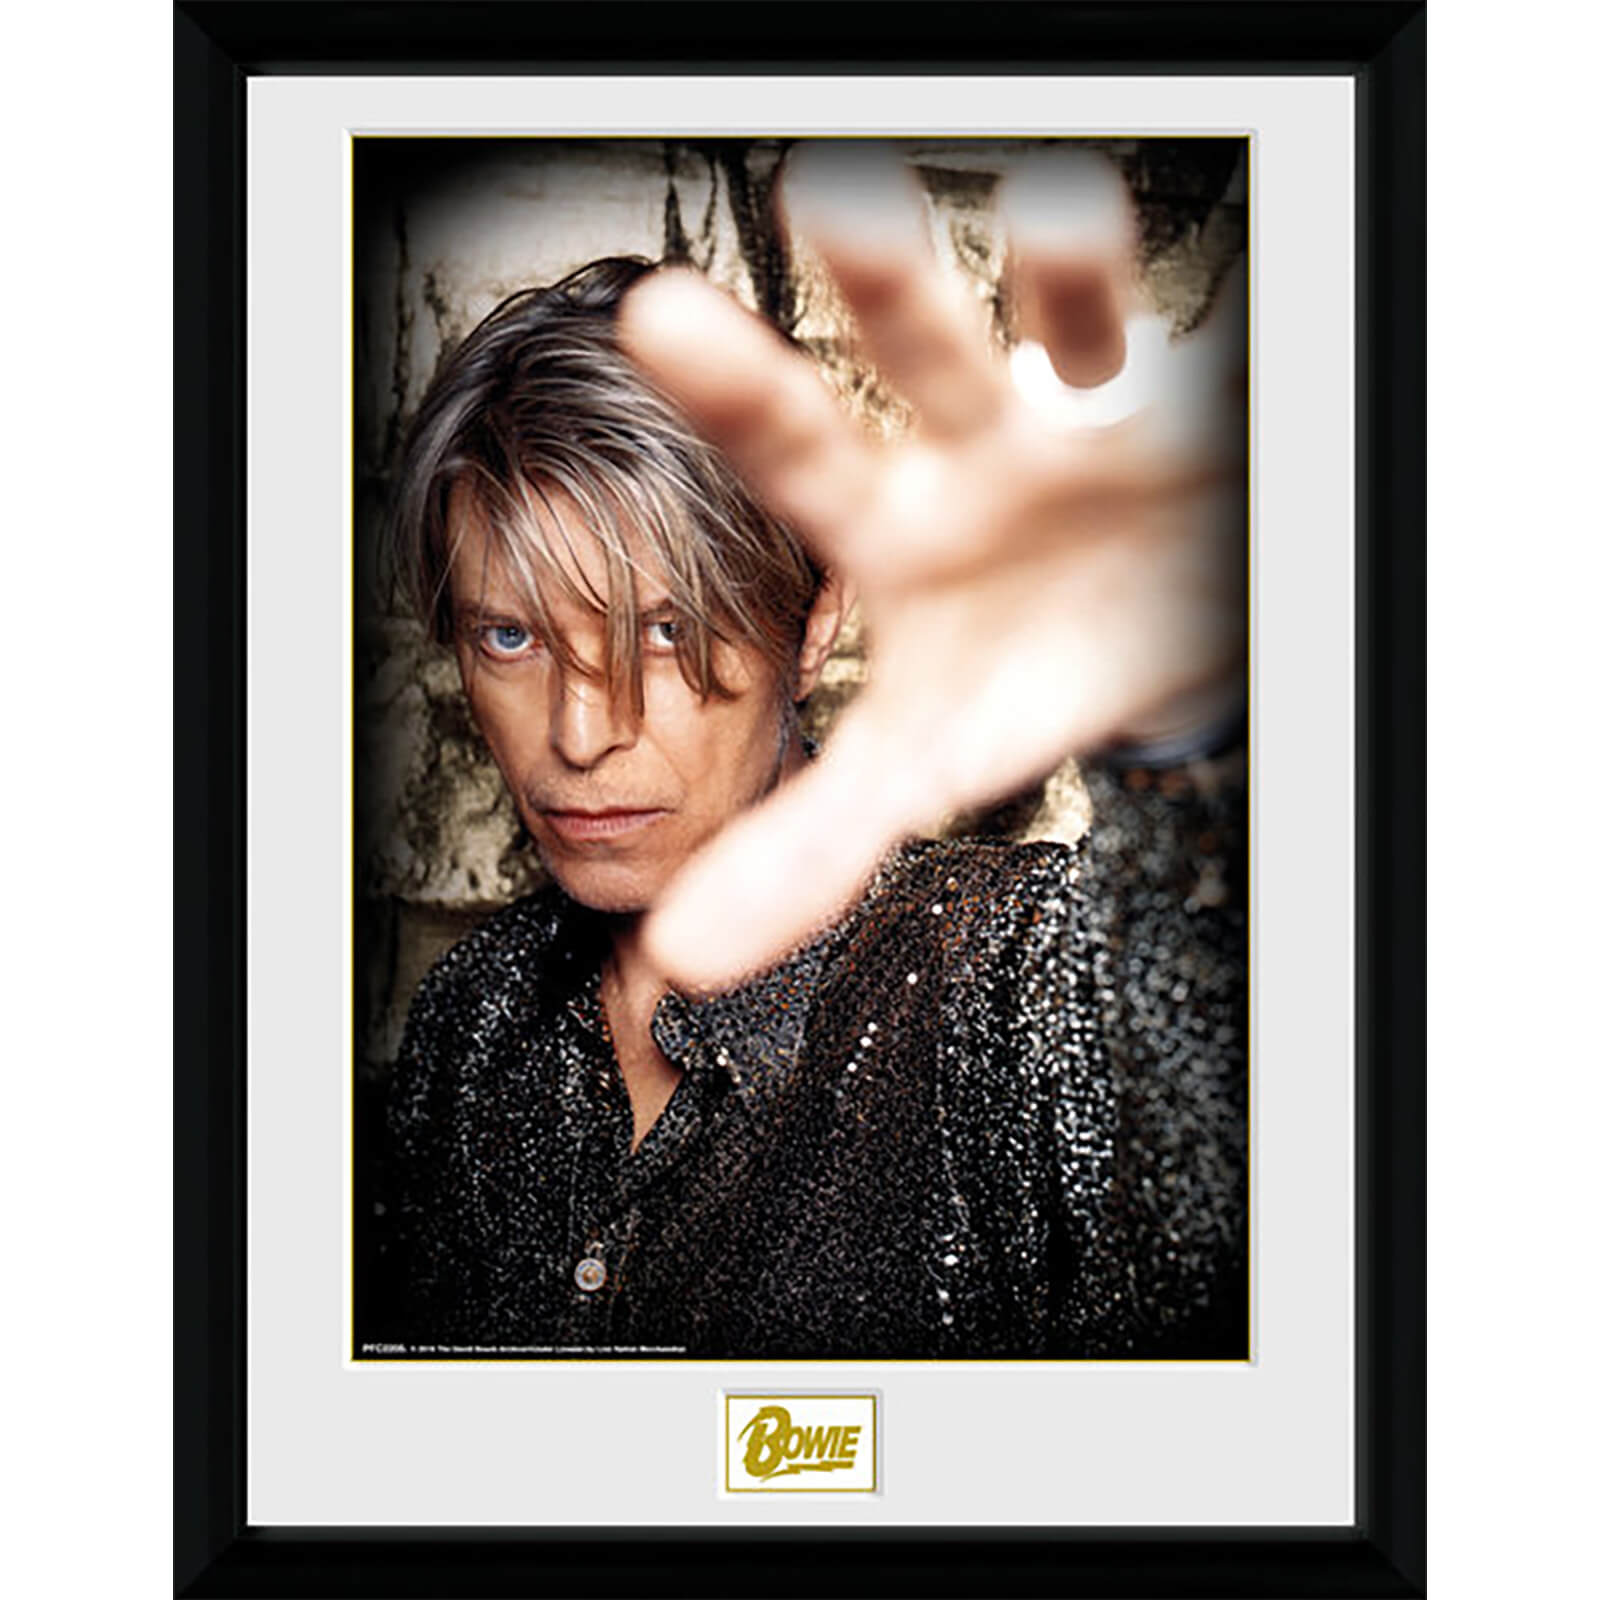 David Bowie Hand - 16 x 12 Inches Framed Photograph